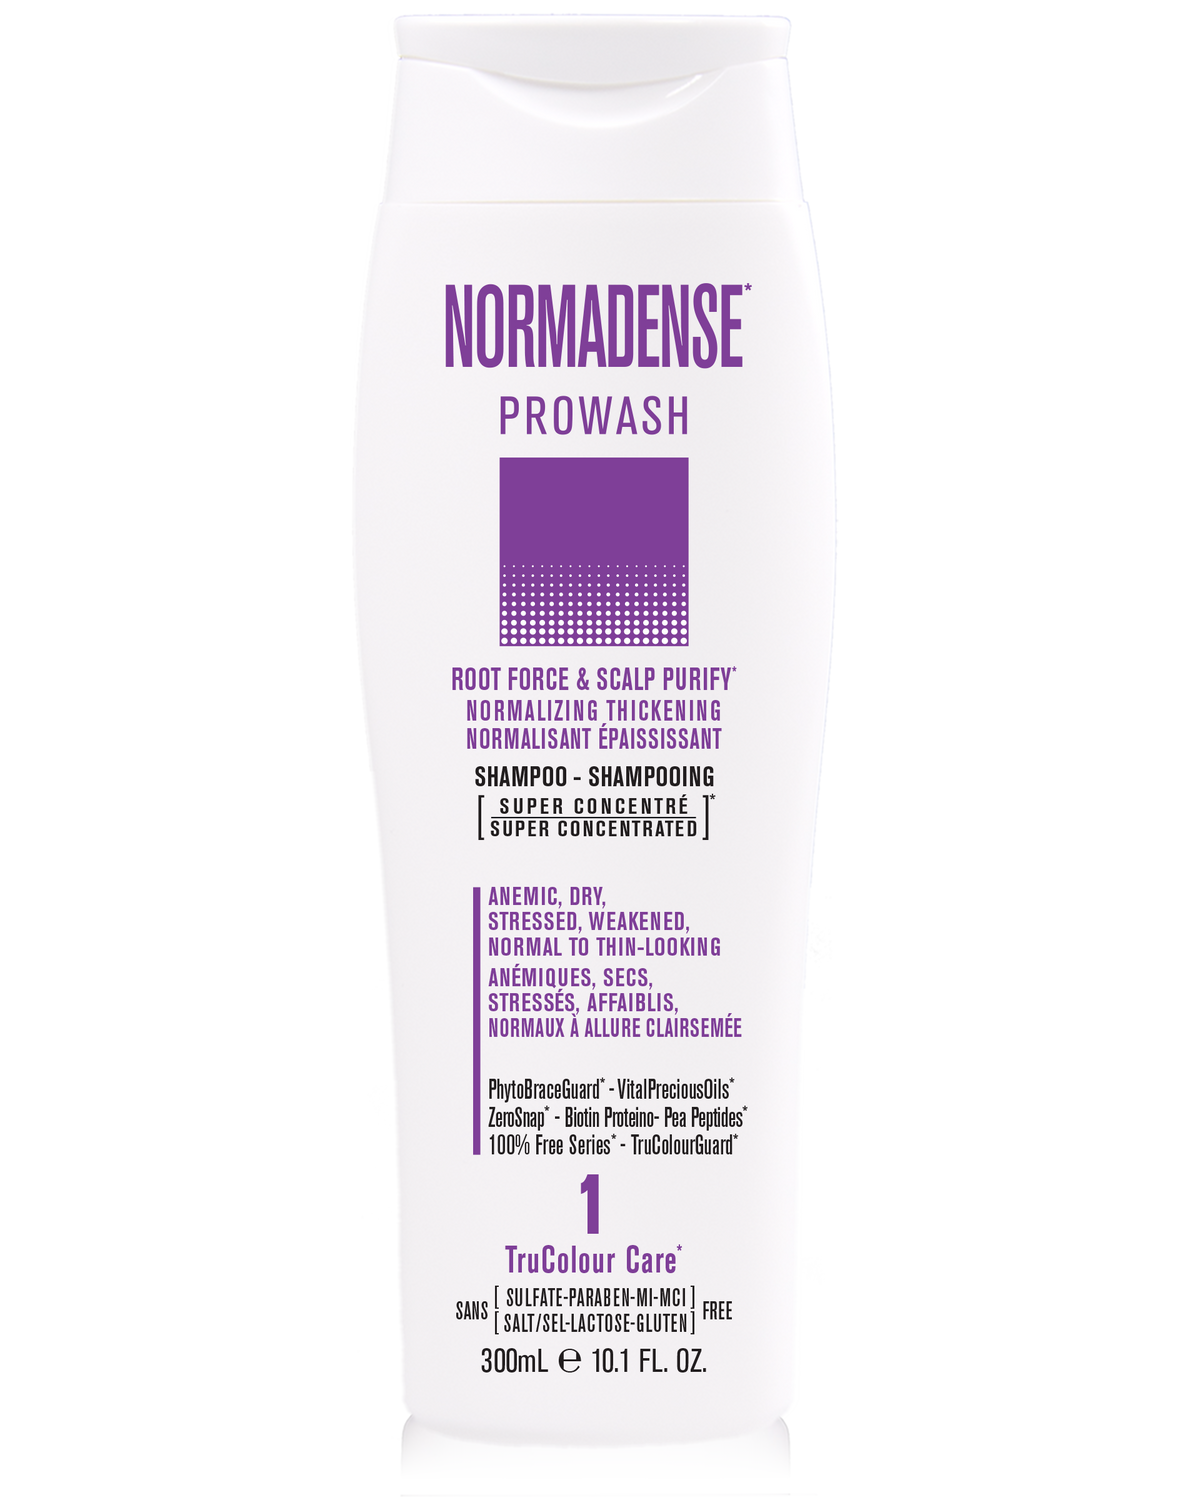 Trio NORMADENSE 1 Root Force & Scalp Purify Normalizing Thickening - SNOBGIRLS.com